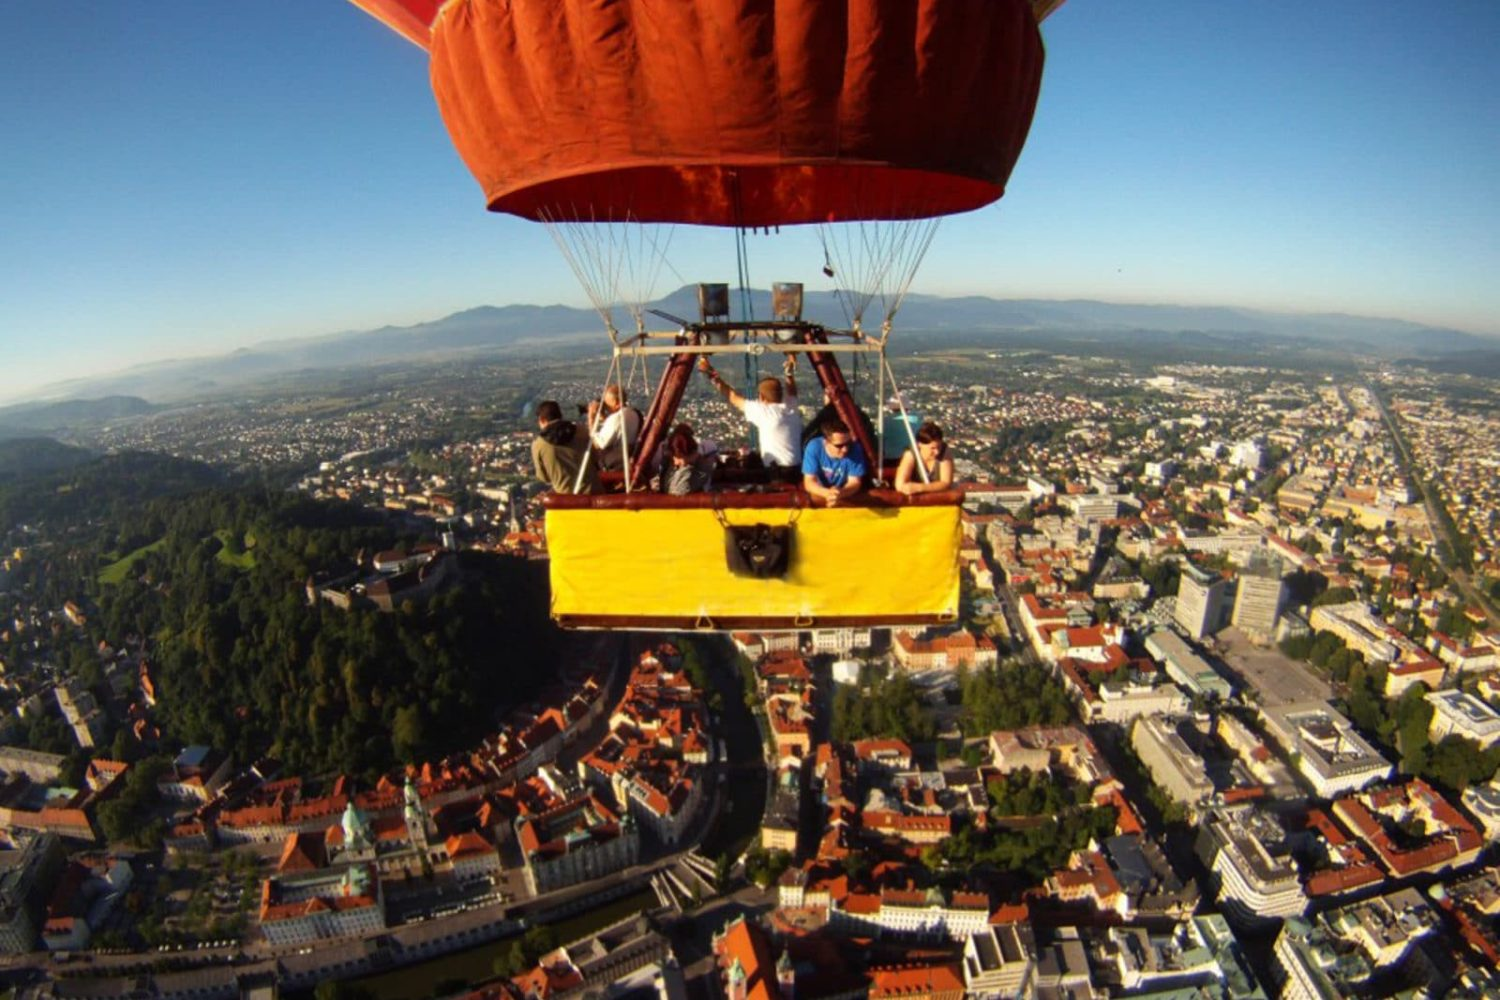 Hot air ballooning over Ljubljana